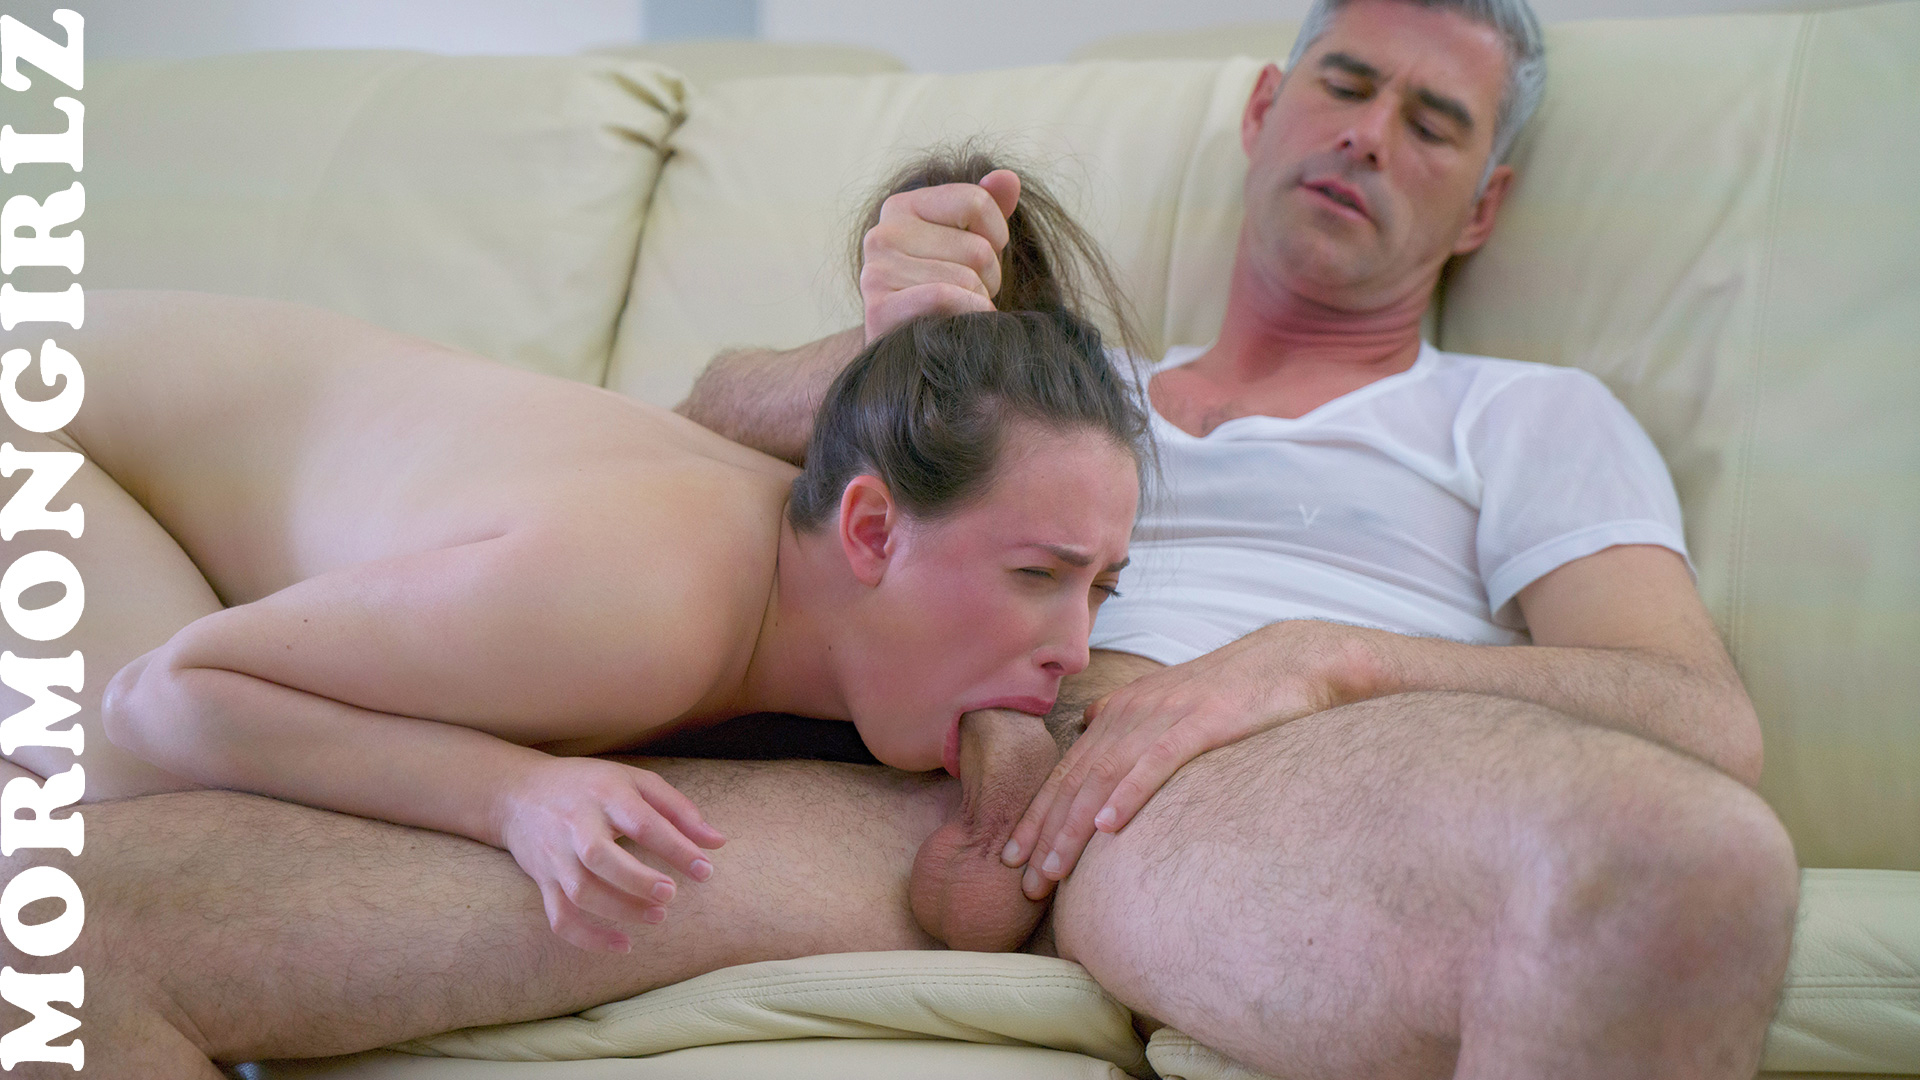 Newbie mormon sister casey gets baptised her vagina by father pete #11